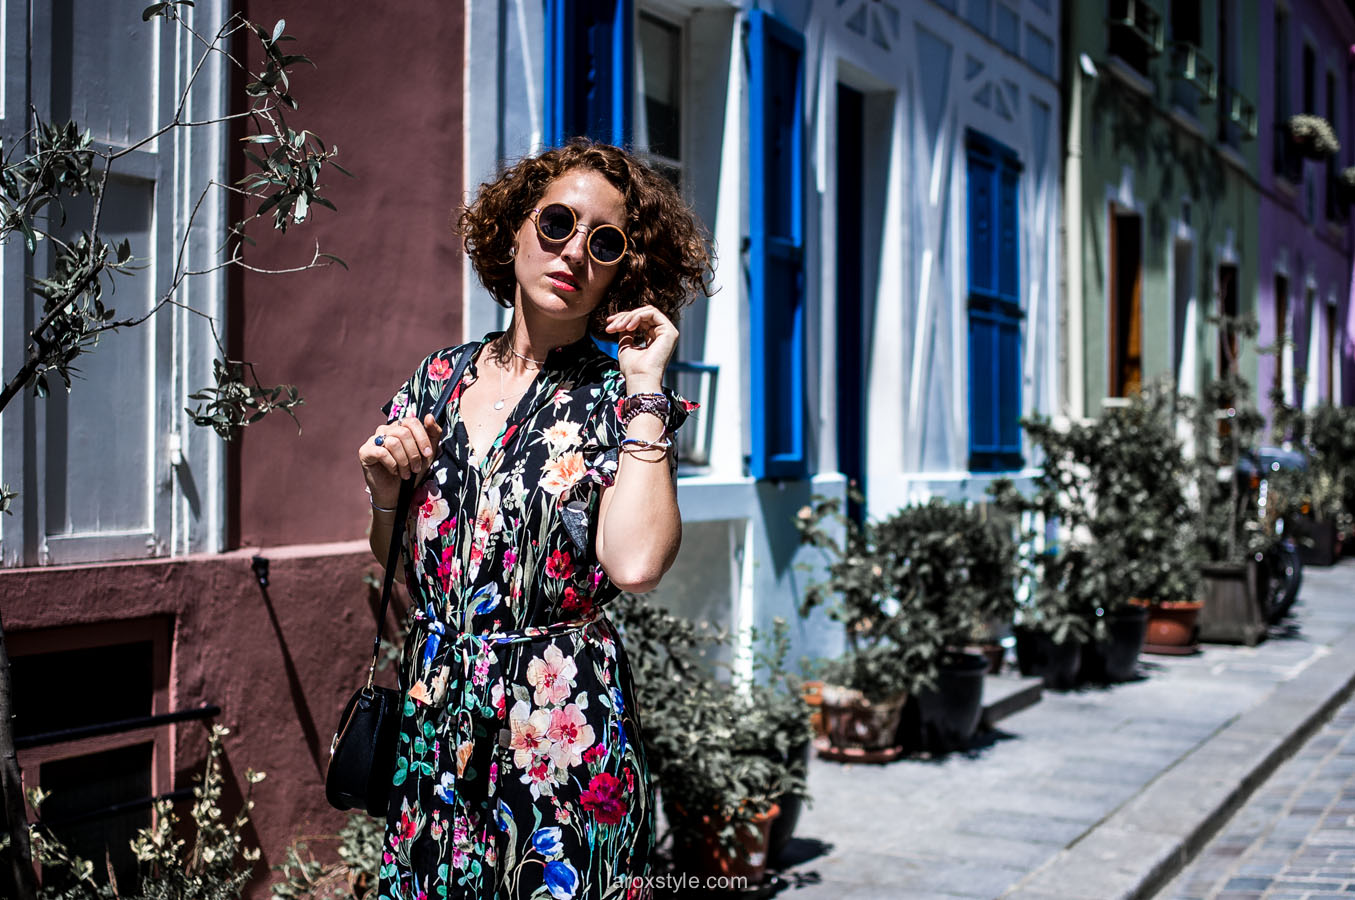 Paris - rue cremieux - fashion blogger - robe long fleurs